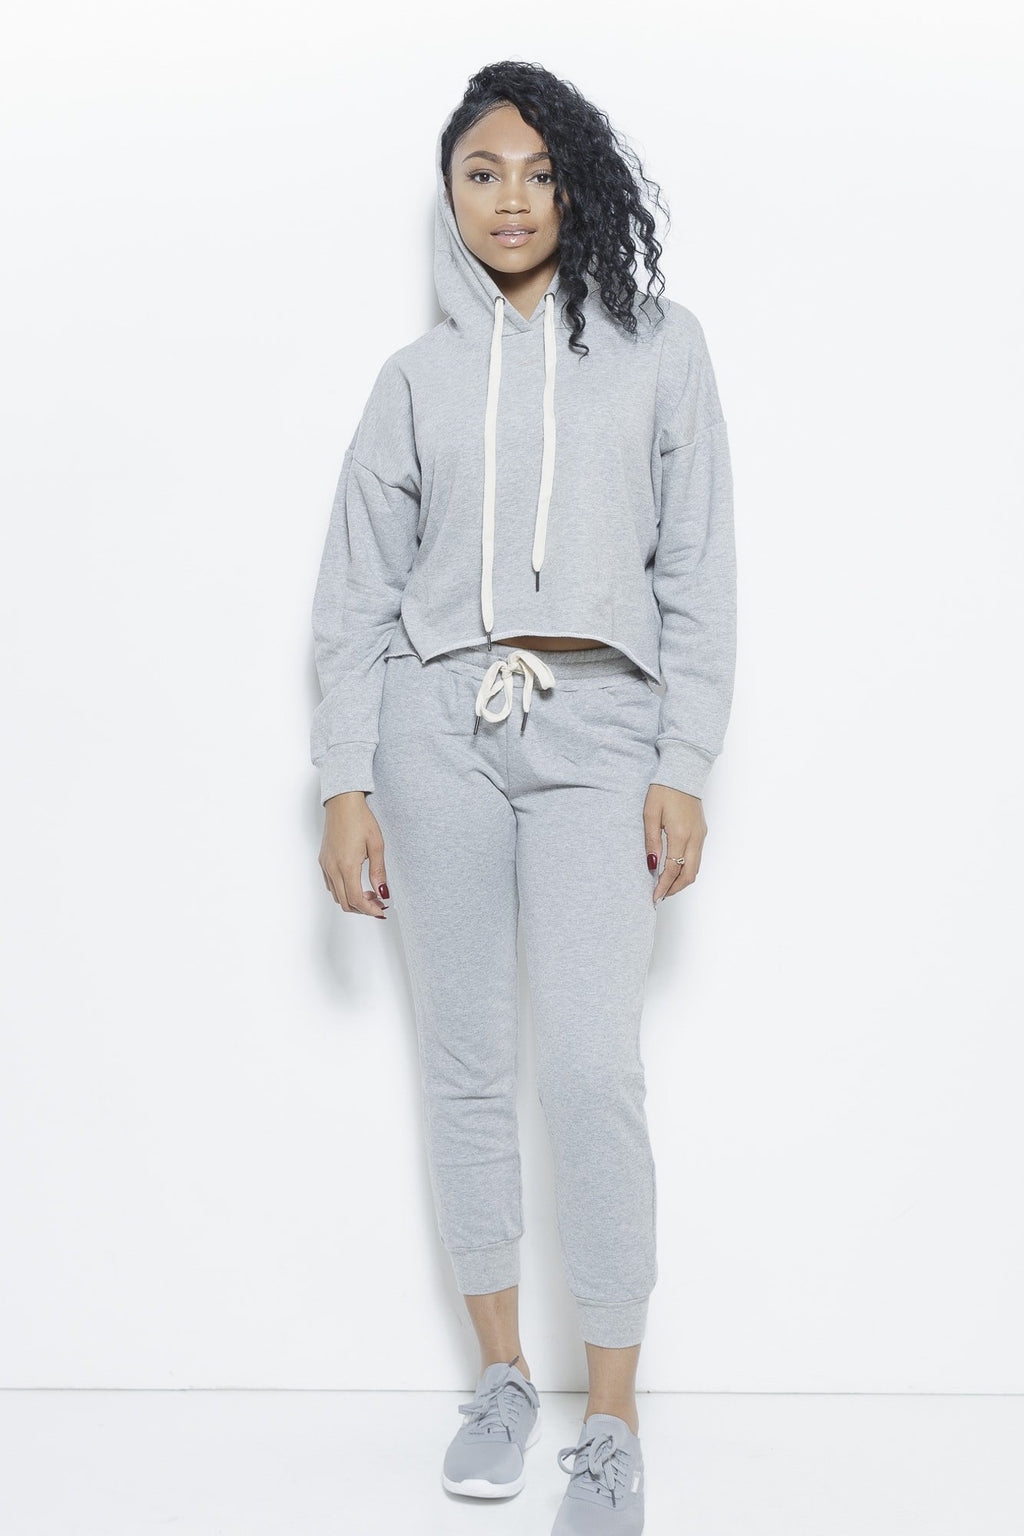 fair-shade - College Days 2-Piece Track Suit- Heather Grey - Clothing